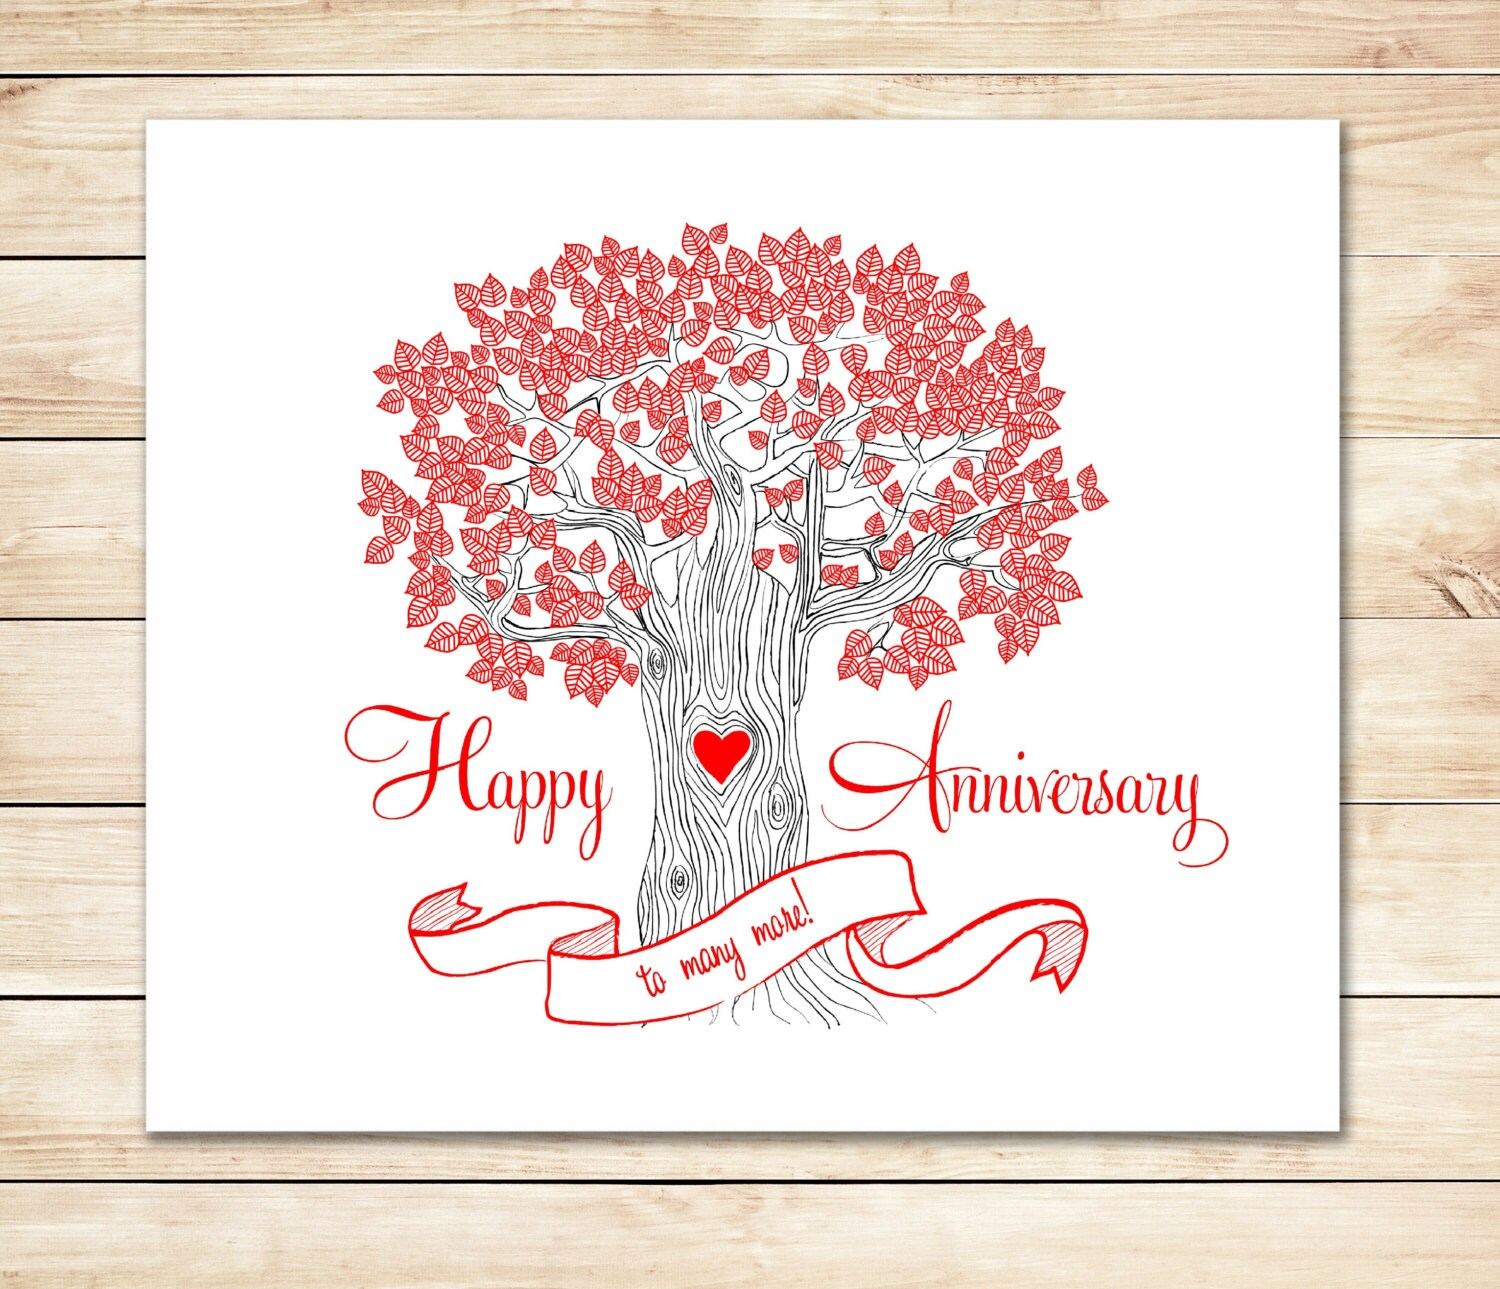 It is an image of Happy Anniversary Card Printable intended for marriage anniversary